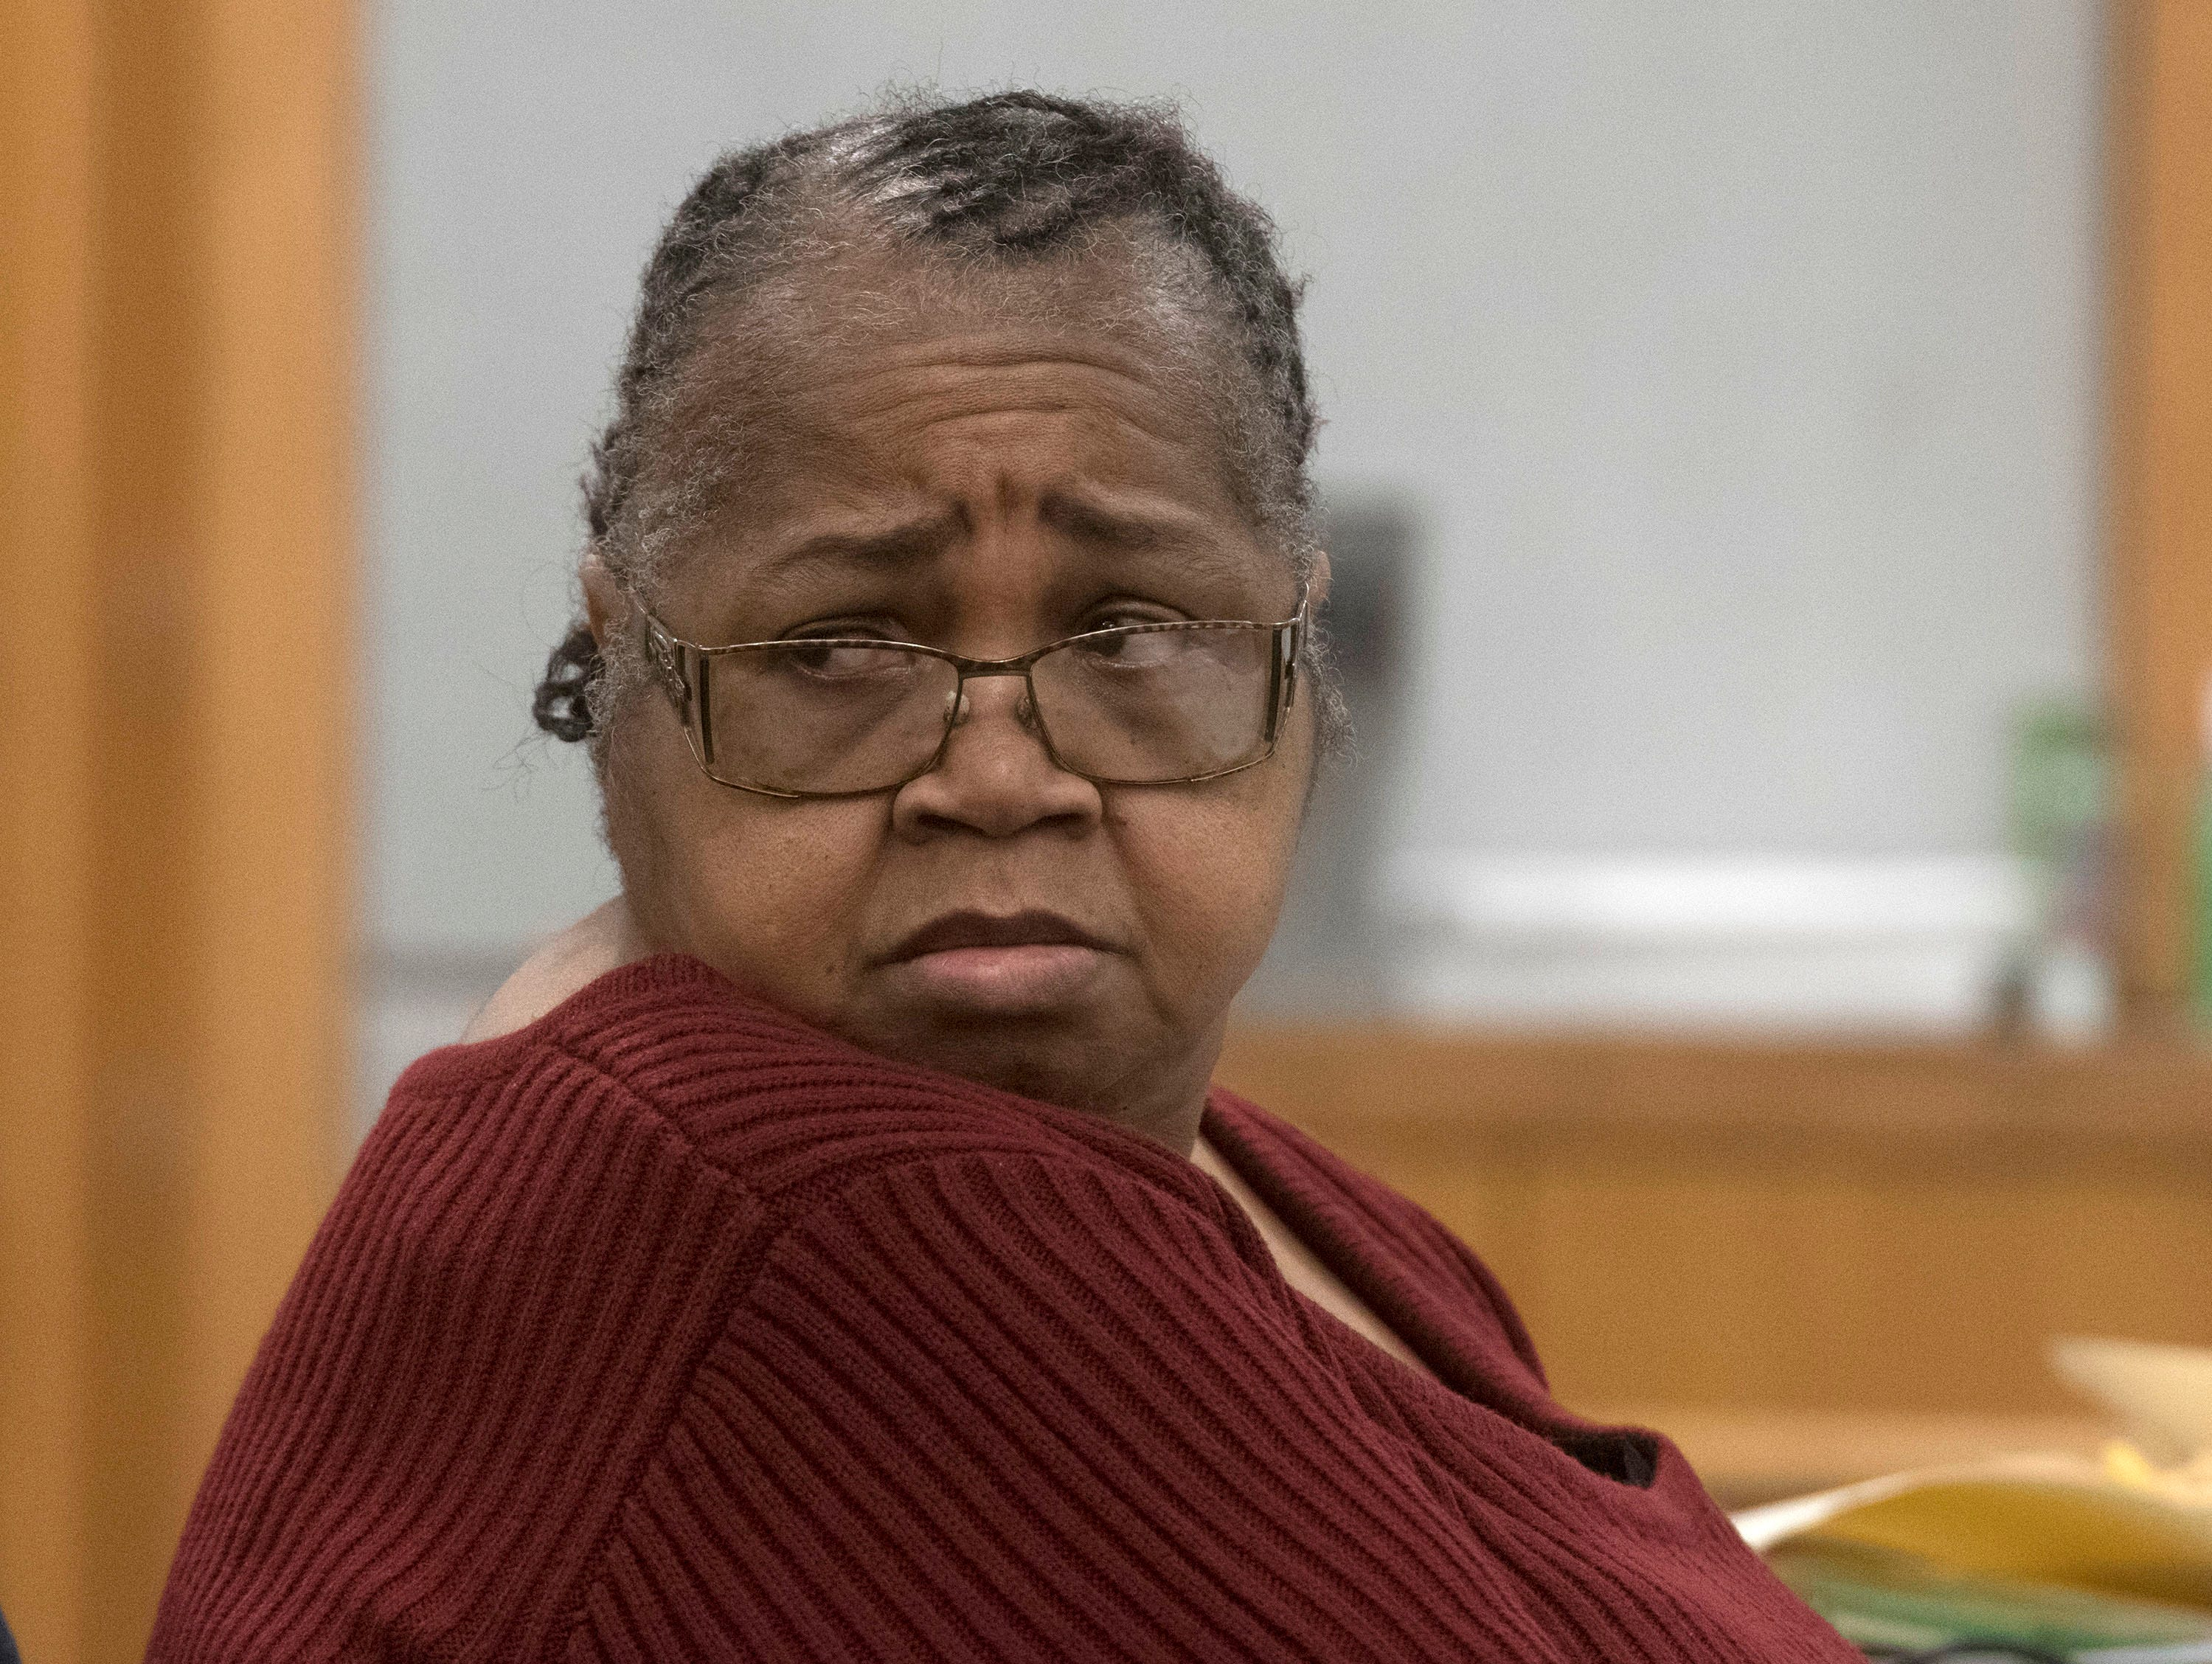 Veronica Green Posey, 66, sits in the courtroom of Circuit Judge Jan Shackelford on Thursday, March 14, 2019, waiting for her trial to begin. Posey is on trial for the death of her 9-year-old cousin Dericka Lindsay.